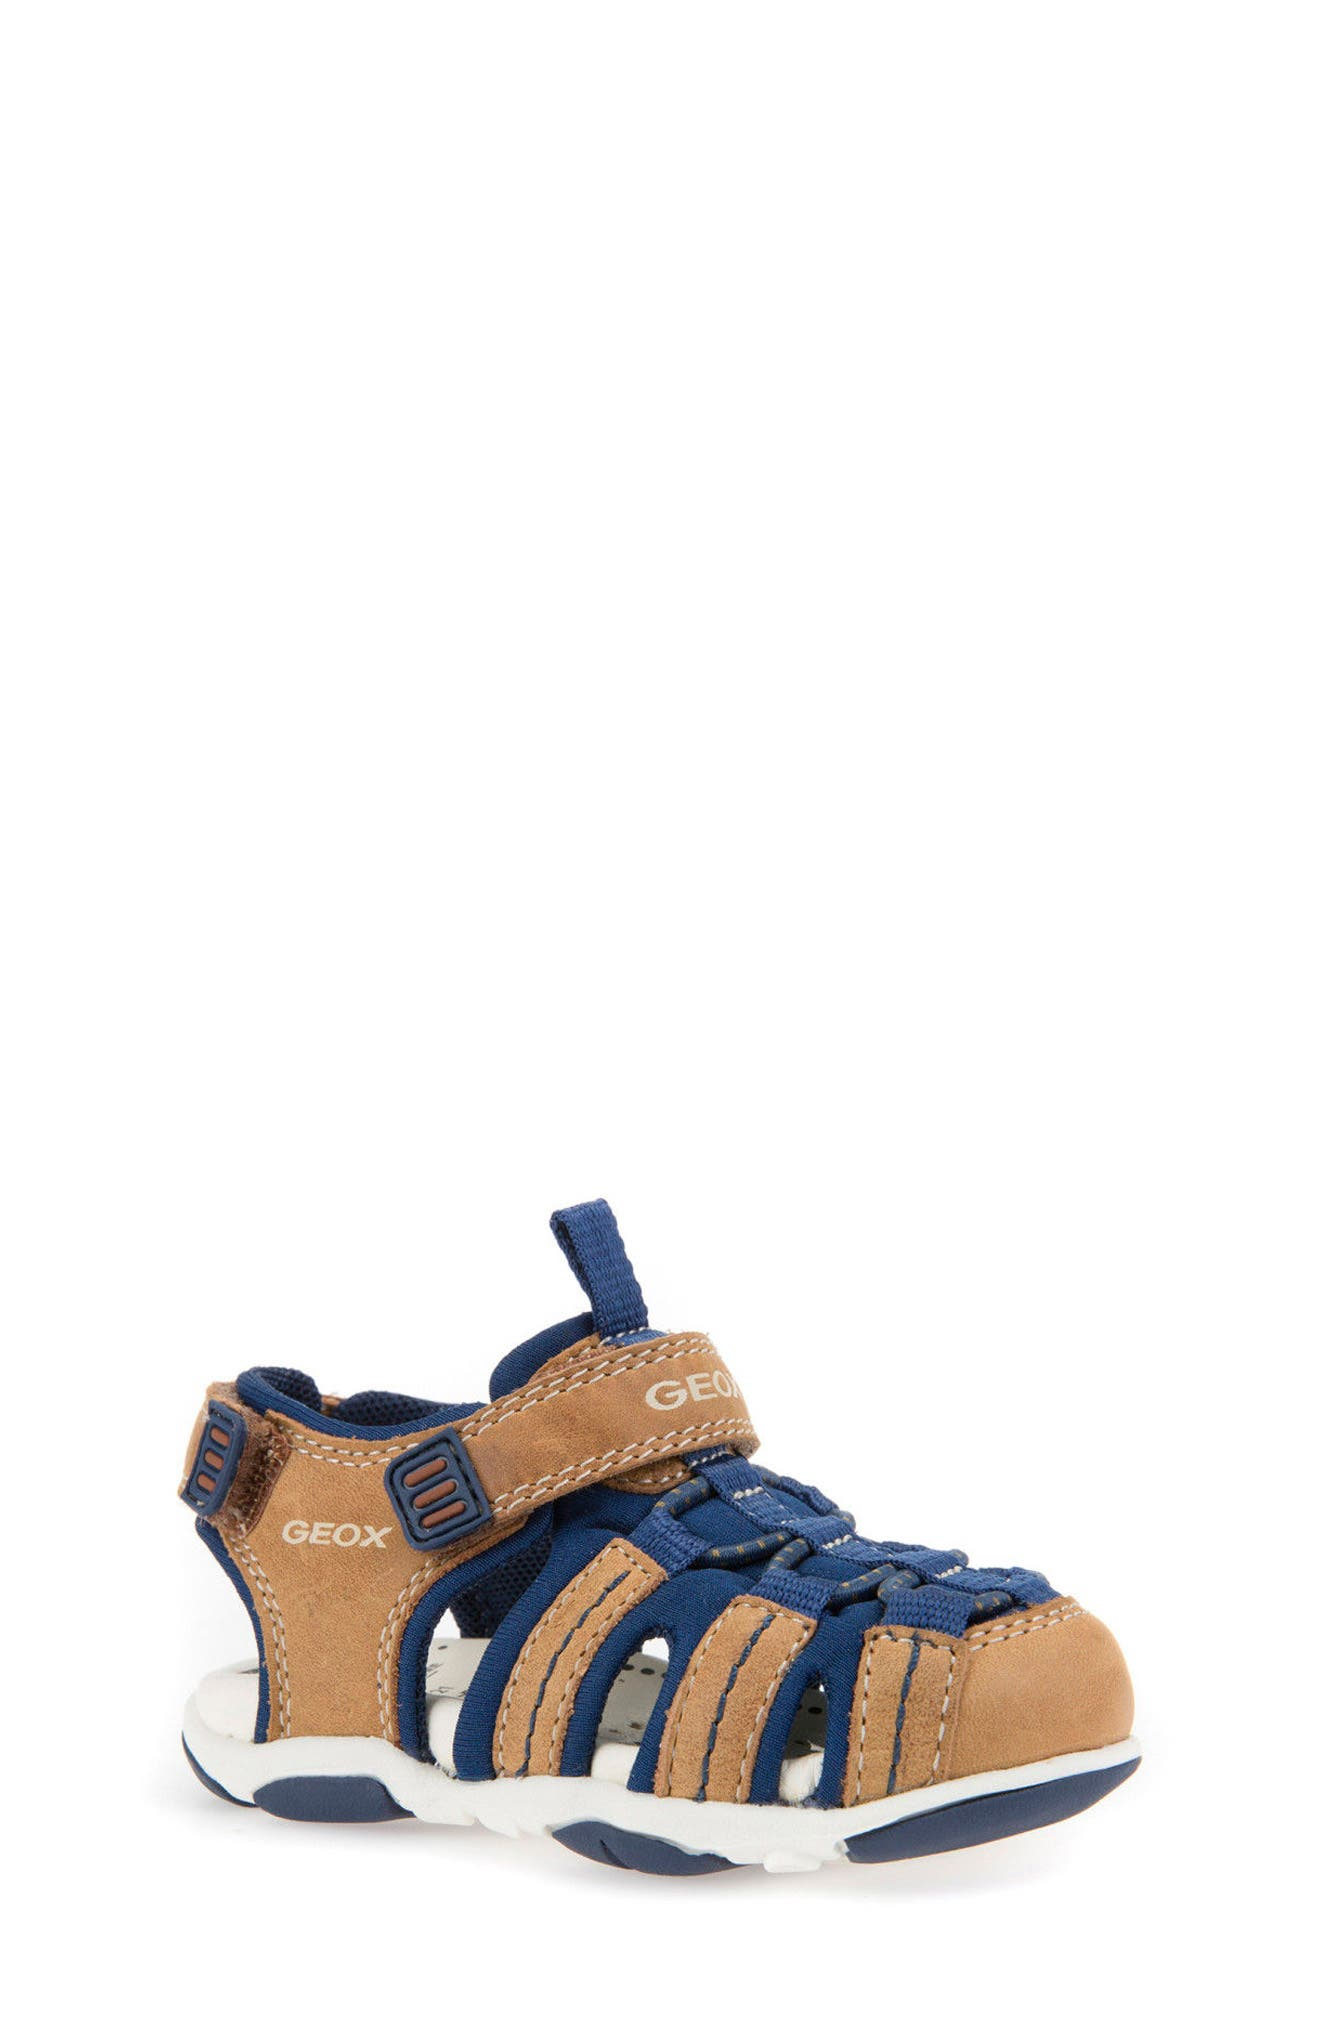 Agasim Fisherman Sandal,                             Main thumbnail 1, color,                             Caramel/ Navy